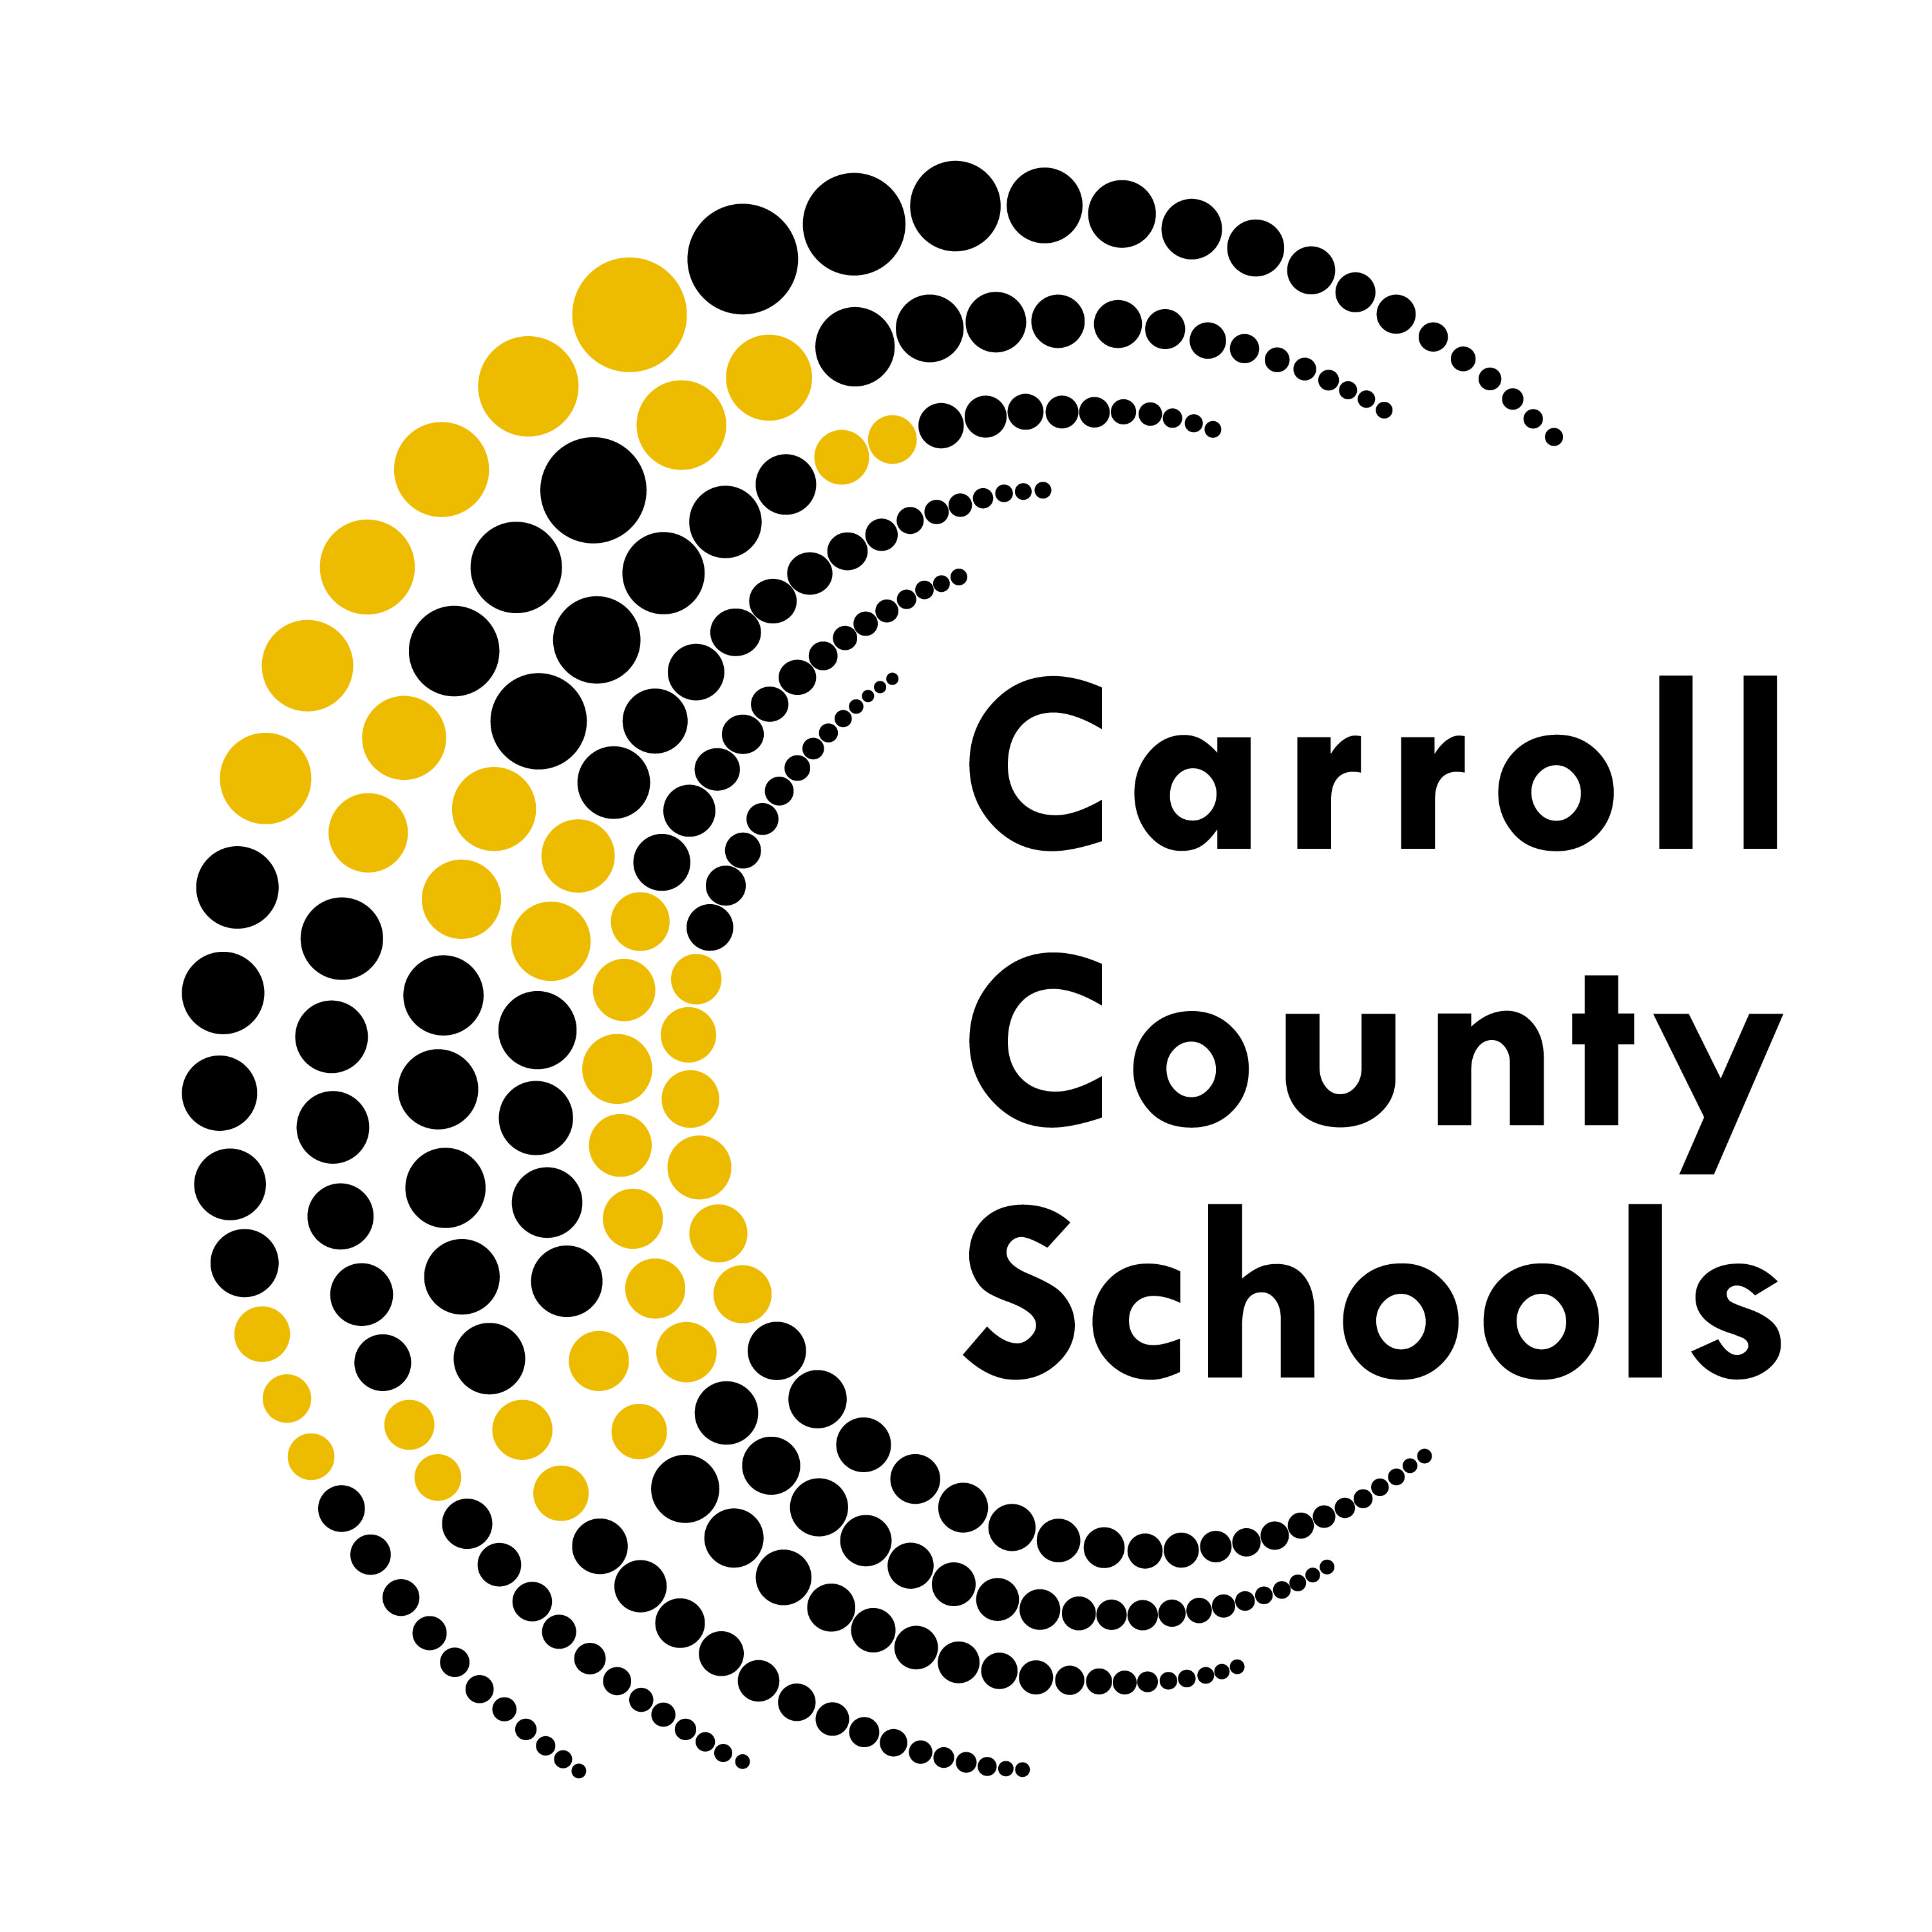 Carroll County School District